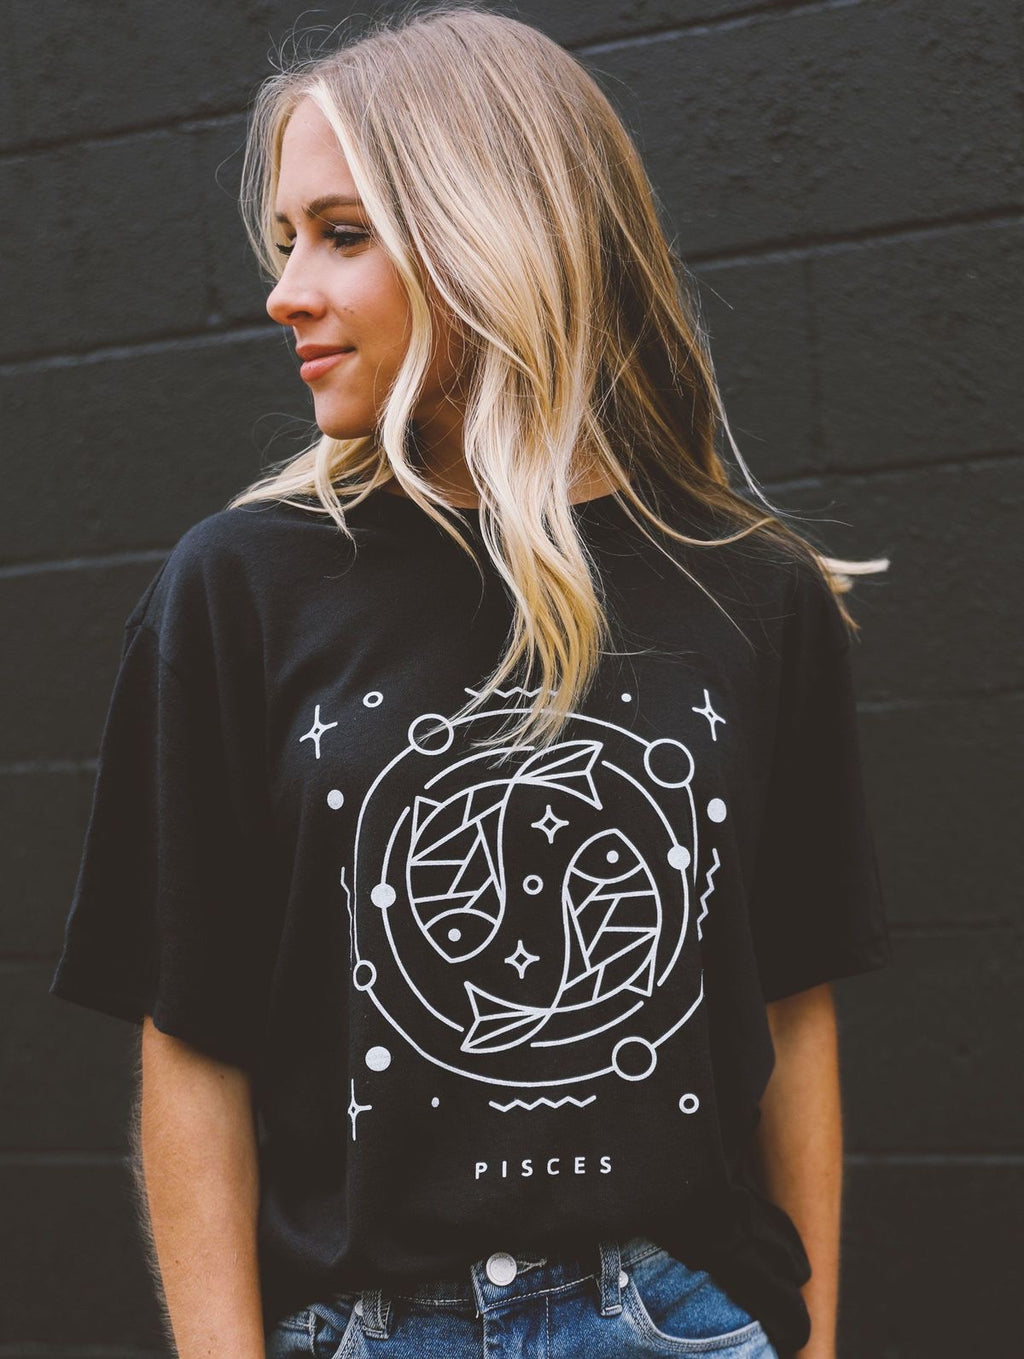 The Pisces Tee